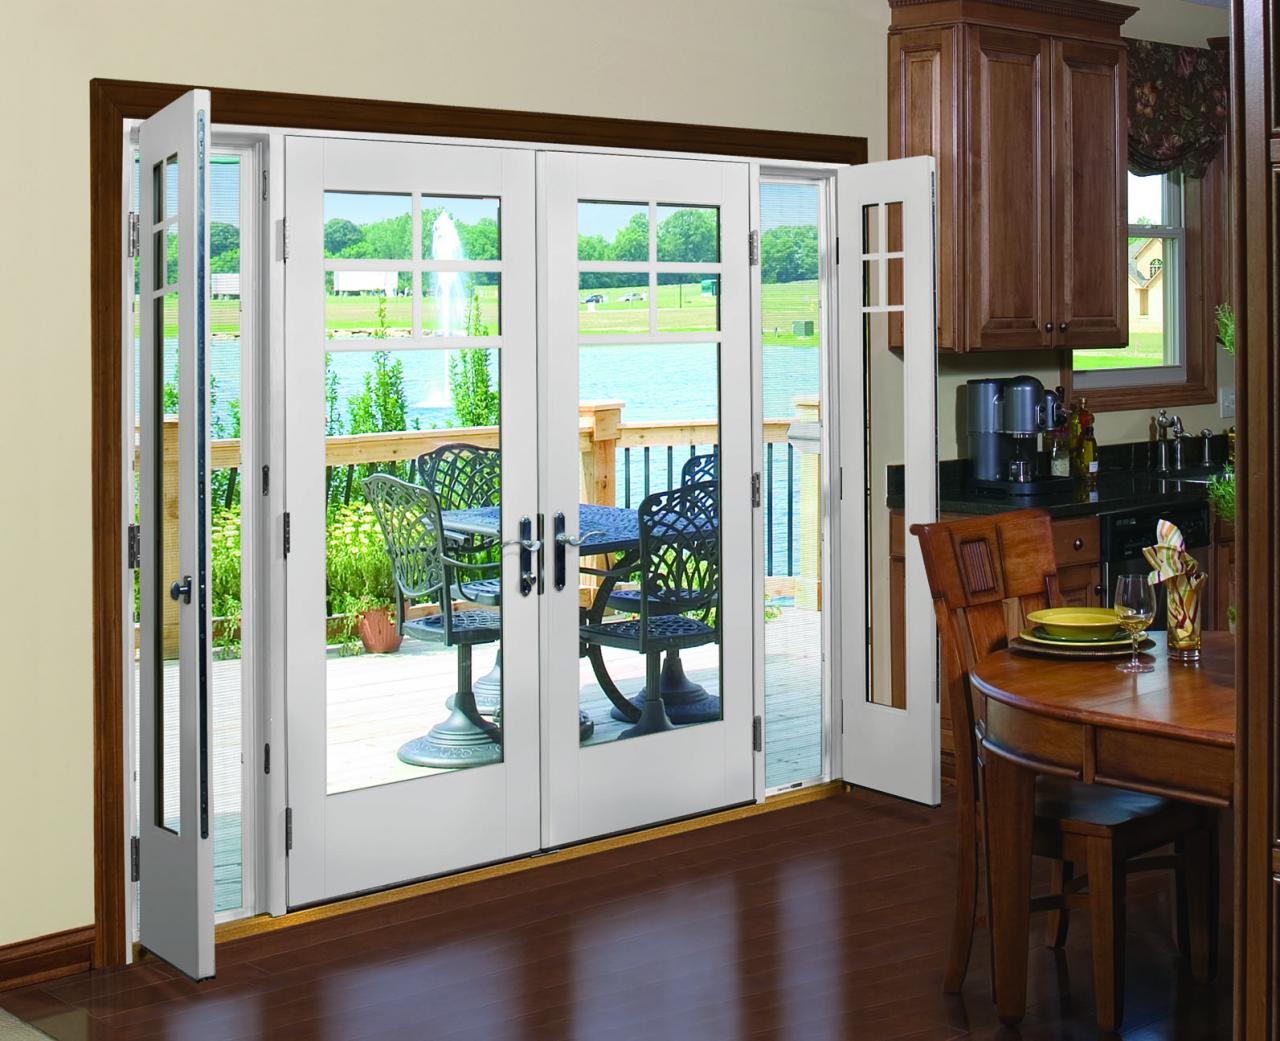 white double therma tru entry doors with silver handle matched with white wall and wooden floor ideas